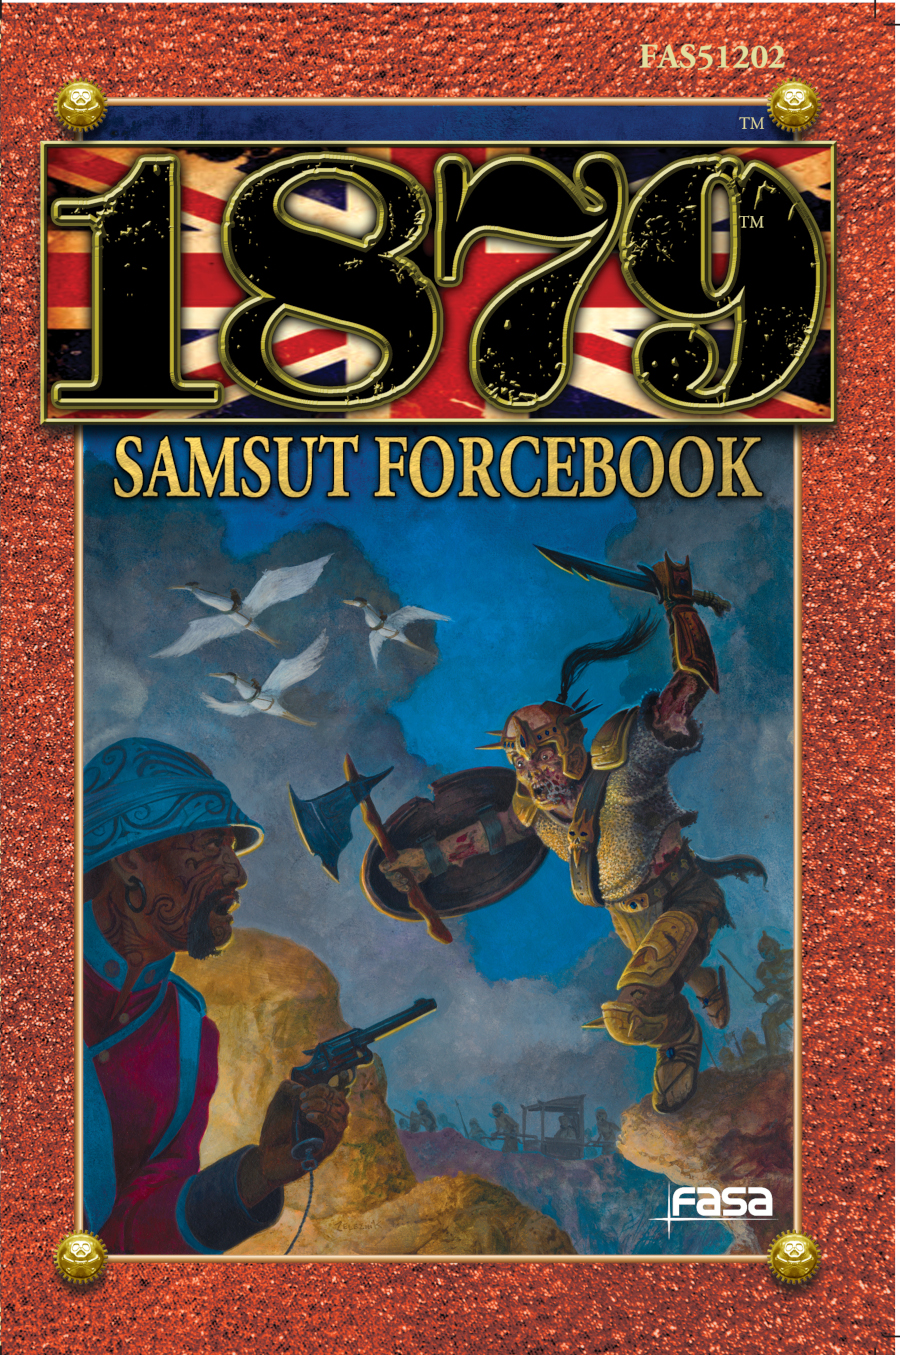 1879 Miniatures Samsut Forcebook [Bundle]